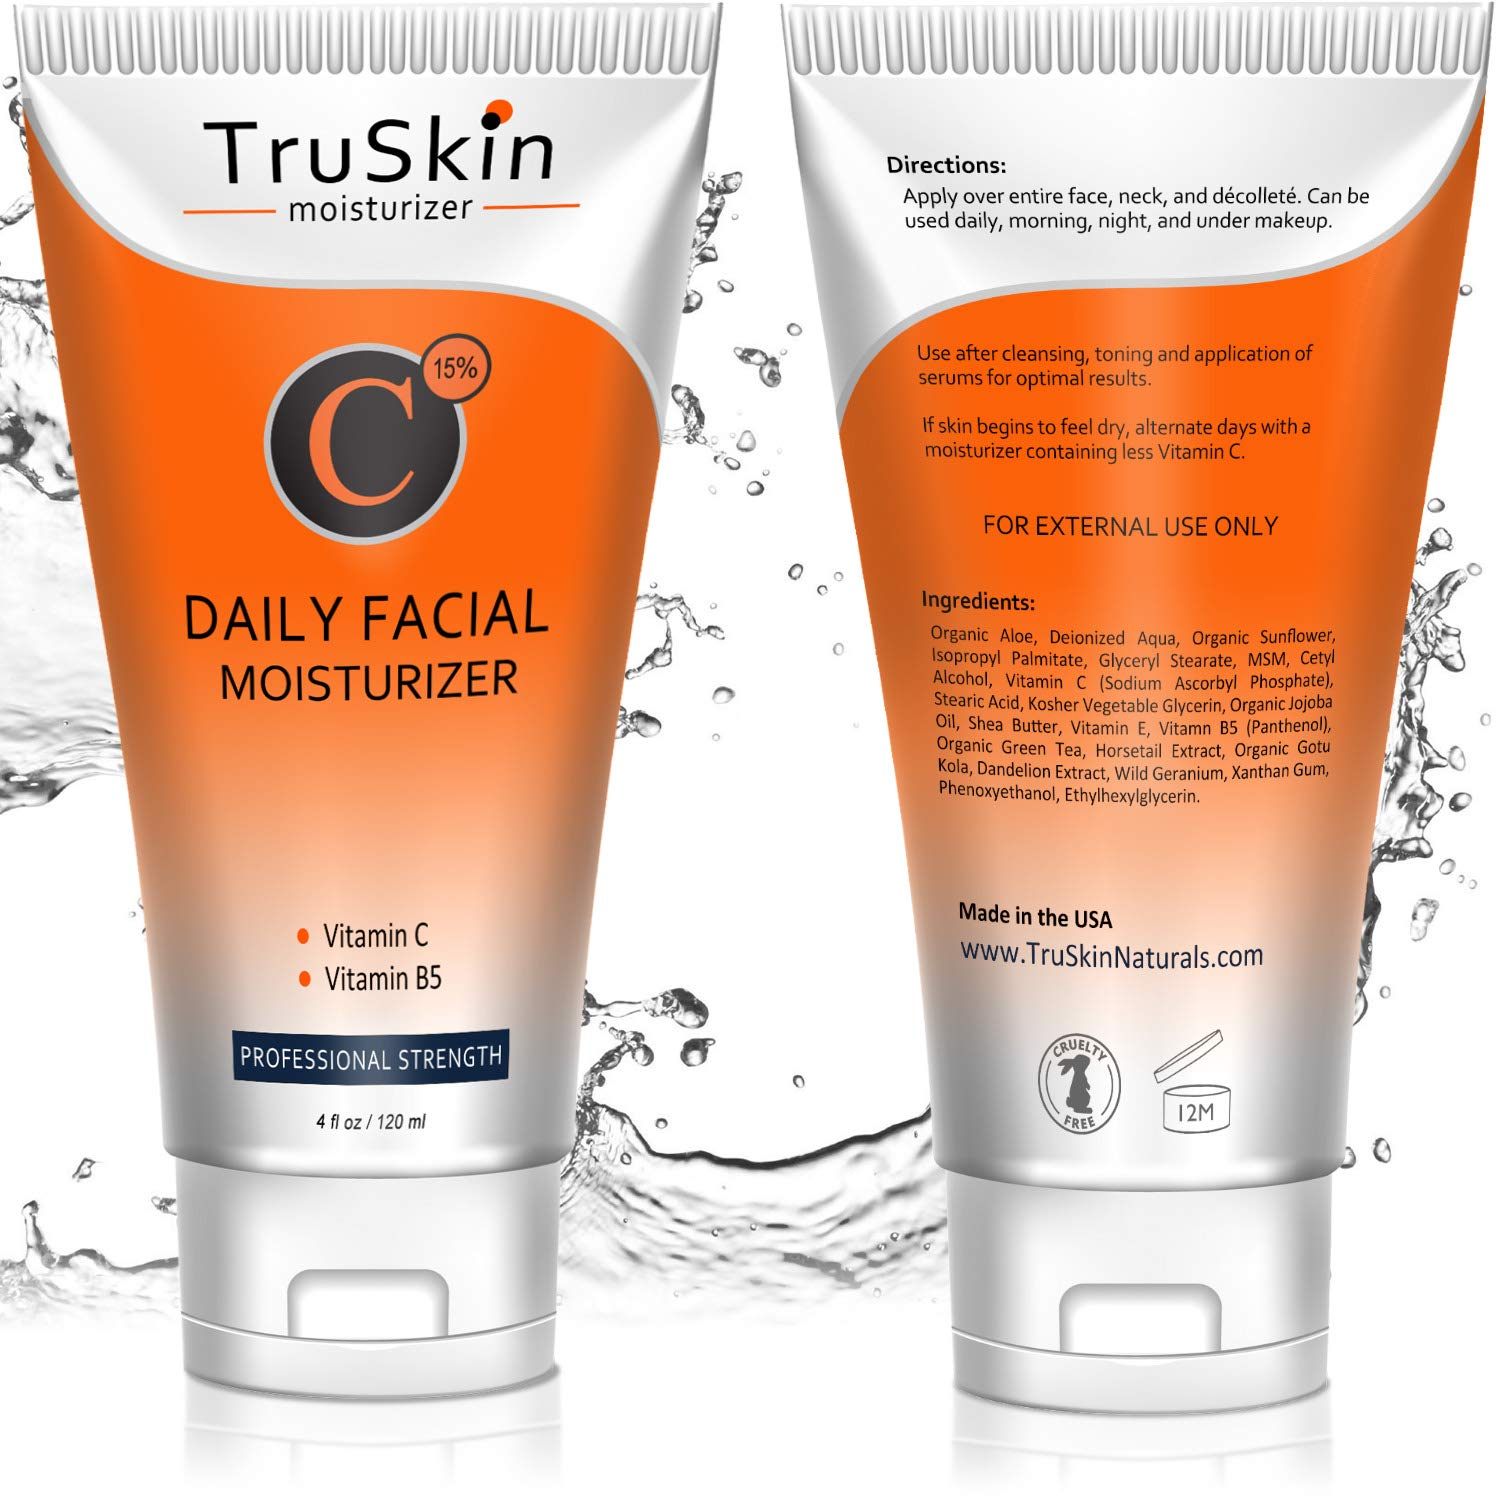 BEST Vitamin C Moisturizer Cream for Face - For Wrinkles, Age Spots, Skin Tone, Firming, and Dark Circles. 4 Fl. Oz by TruSkin Naturals (Image #2)